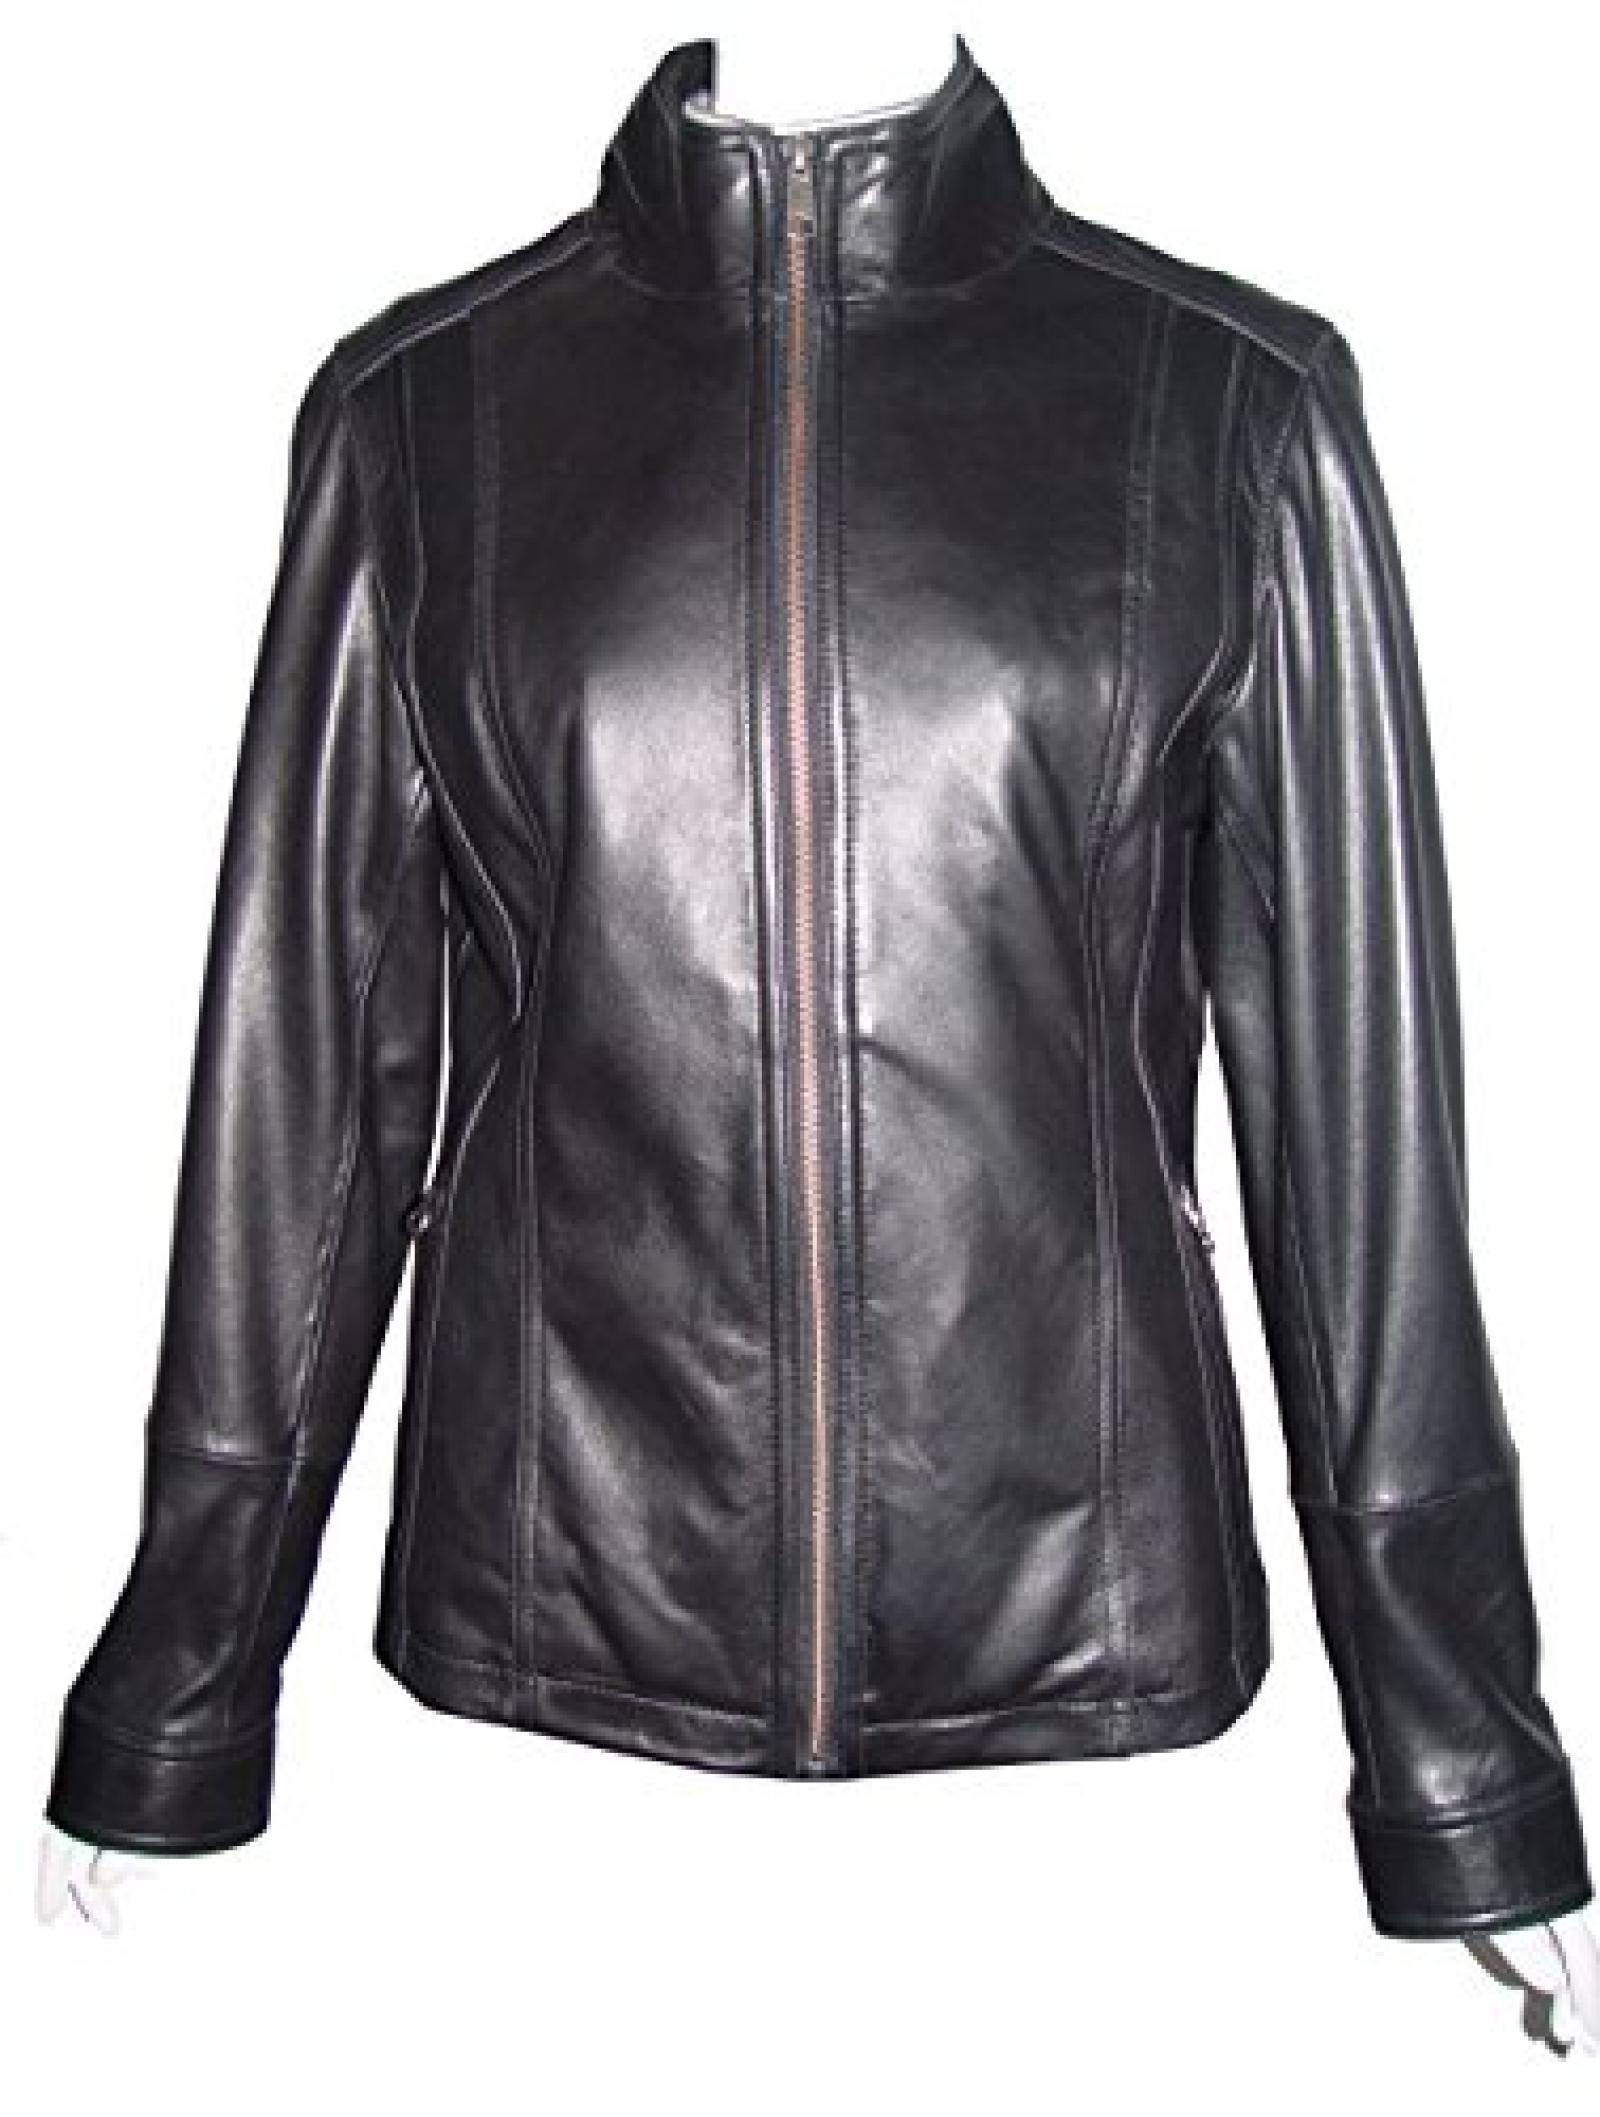 Nettailor Women PLUS SIZE 4202 Soft Leather New Casual Jacket Zip Front Closure